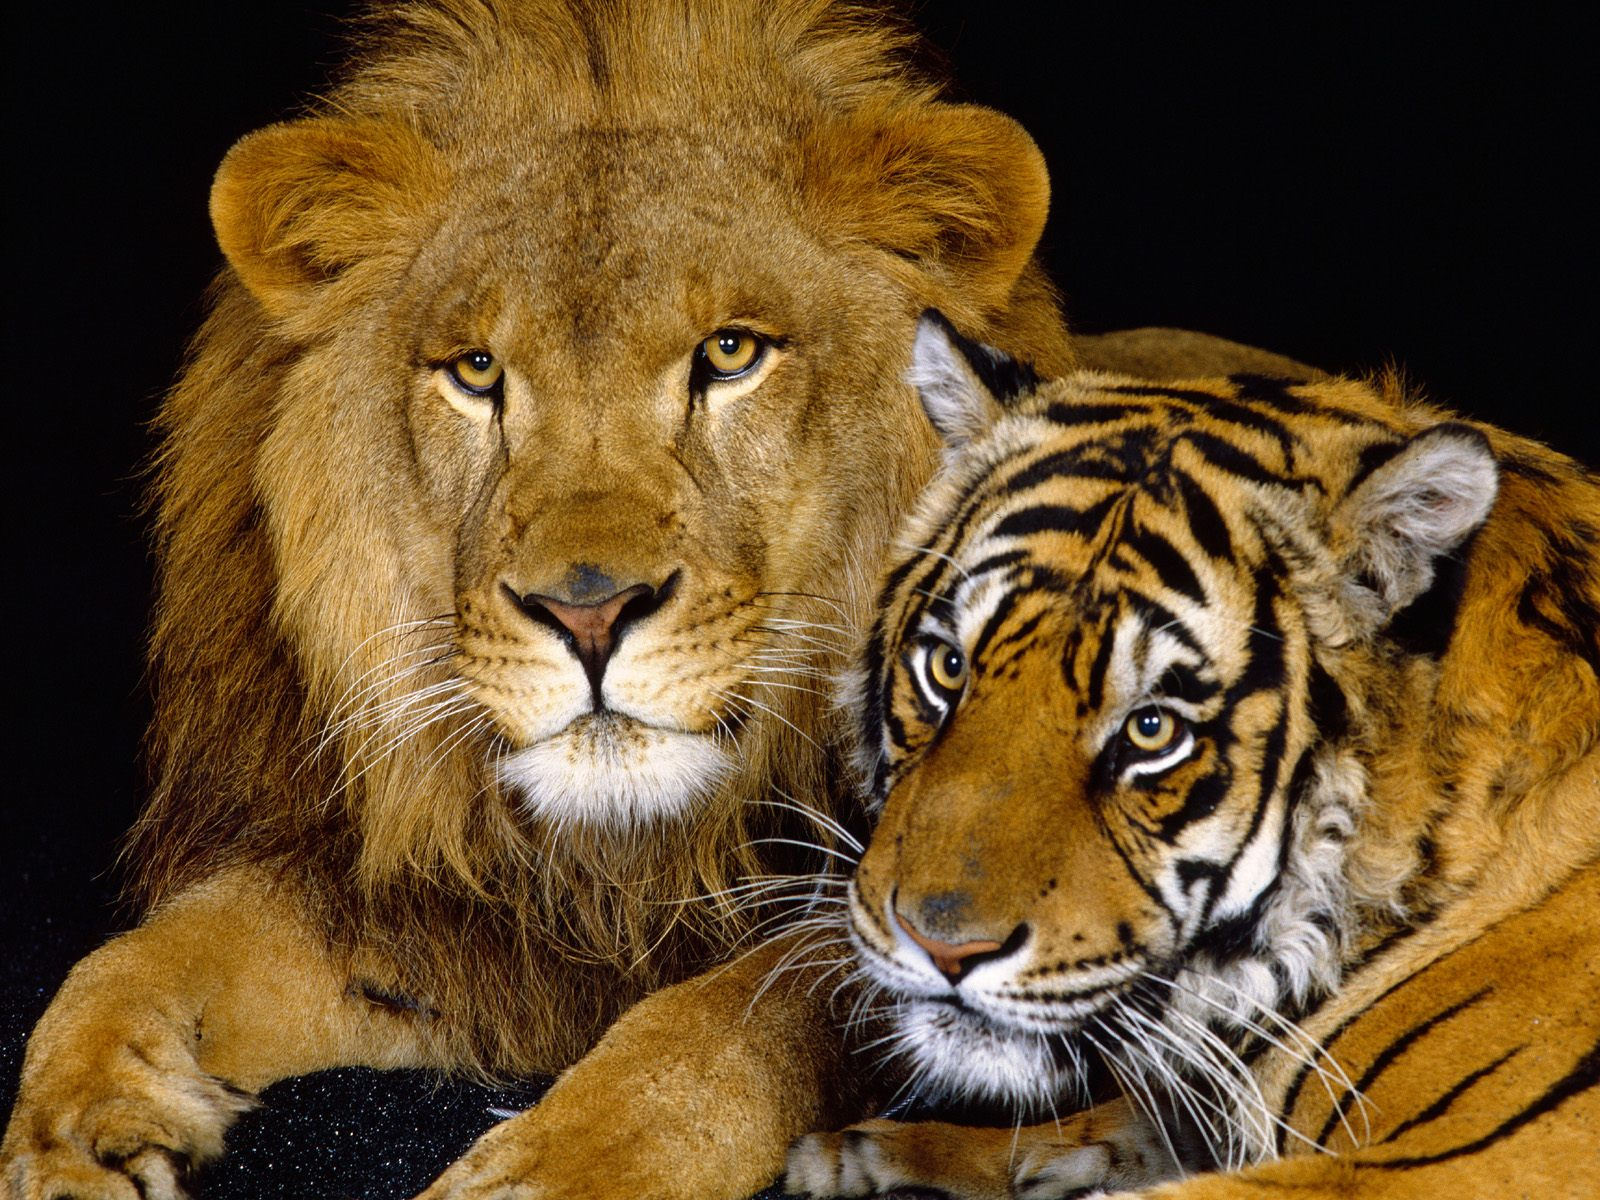 3d wallpapers hd animals - photo #18